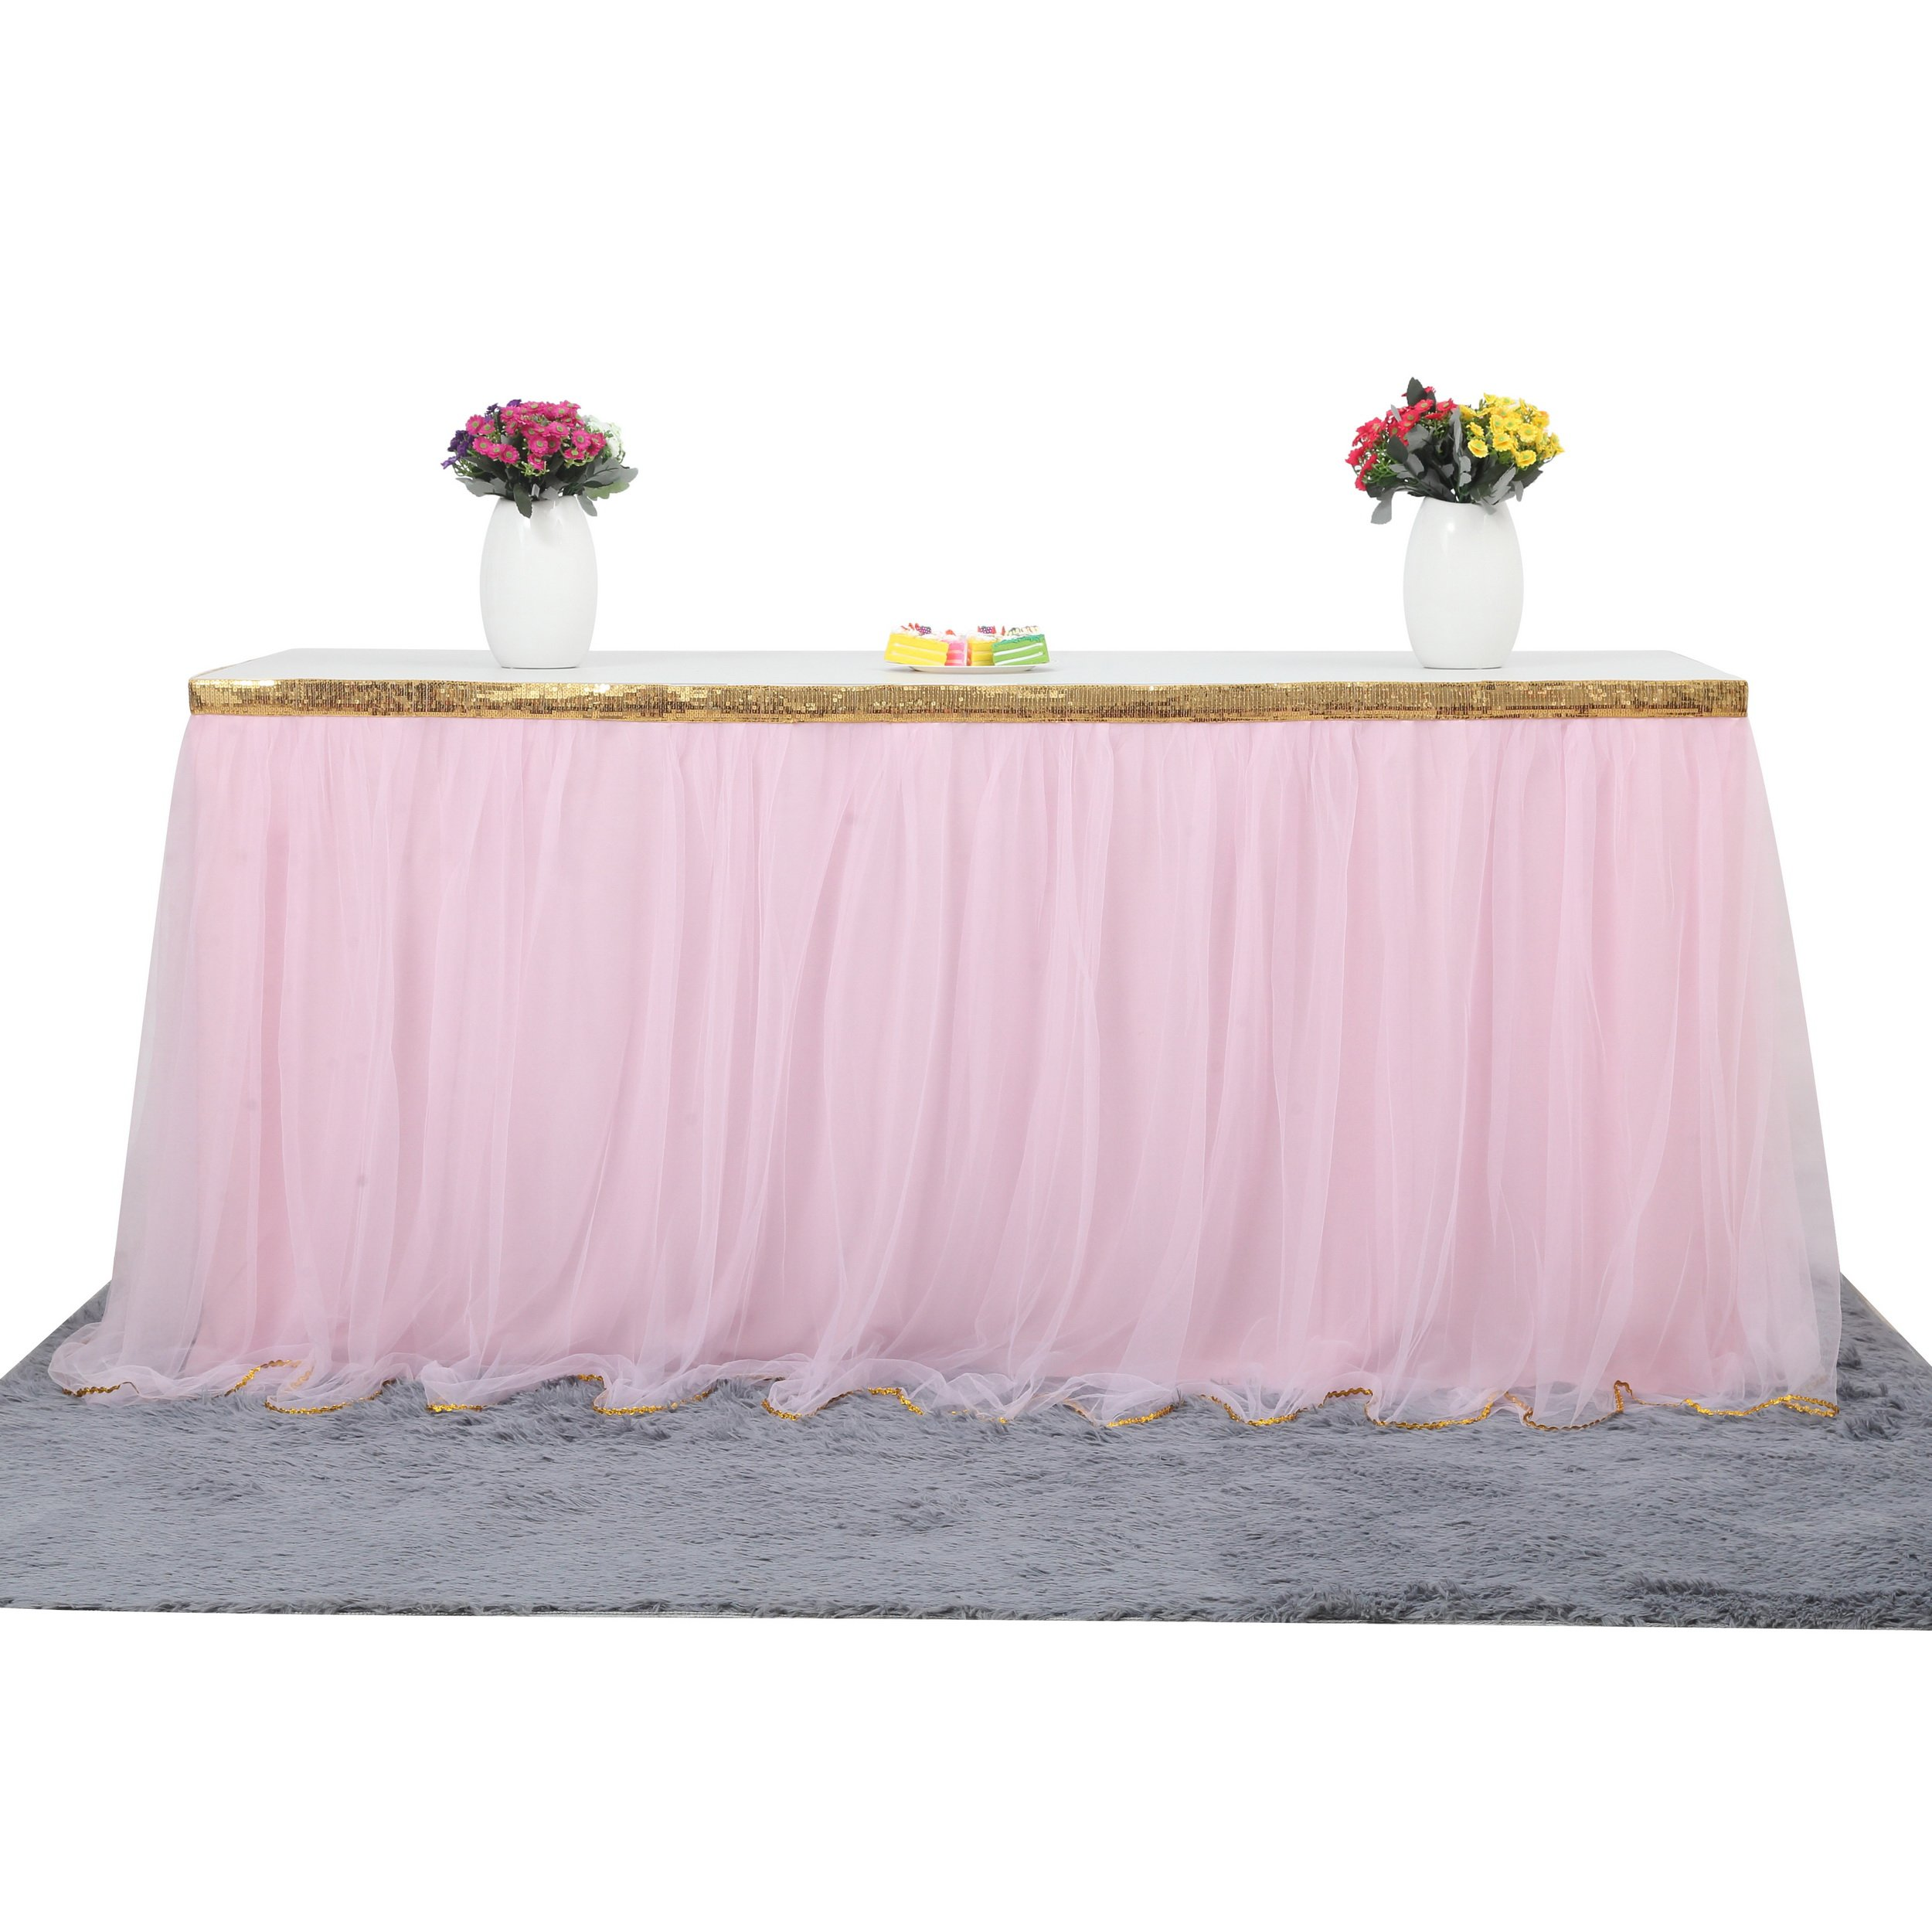 9 ft Pink Table Skirt Fluffy 2 Layers Bling Gold Trim Mesh Tutu Tulle Table Skirt for Rectangle or Round Tables Baby Shower Wedding Birthday Party Decorations (Pink, 9 ft)